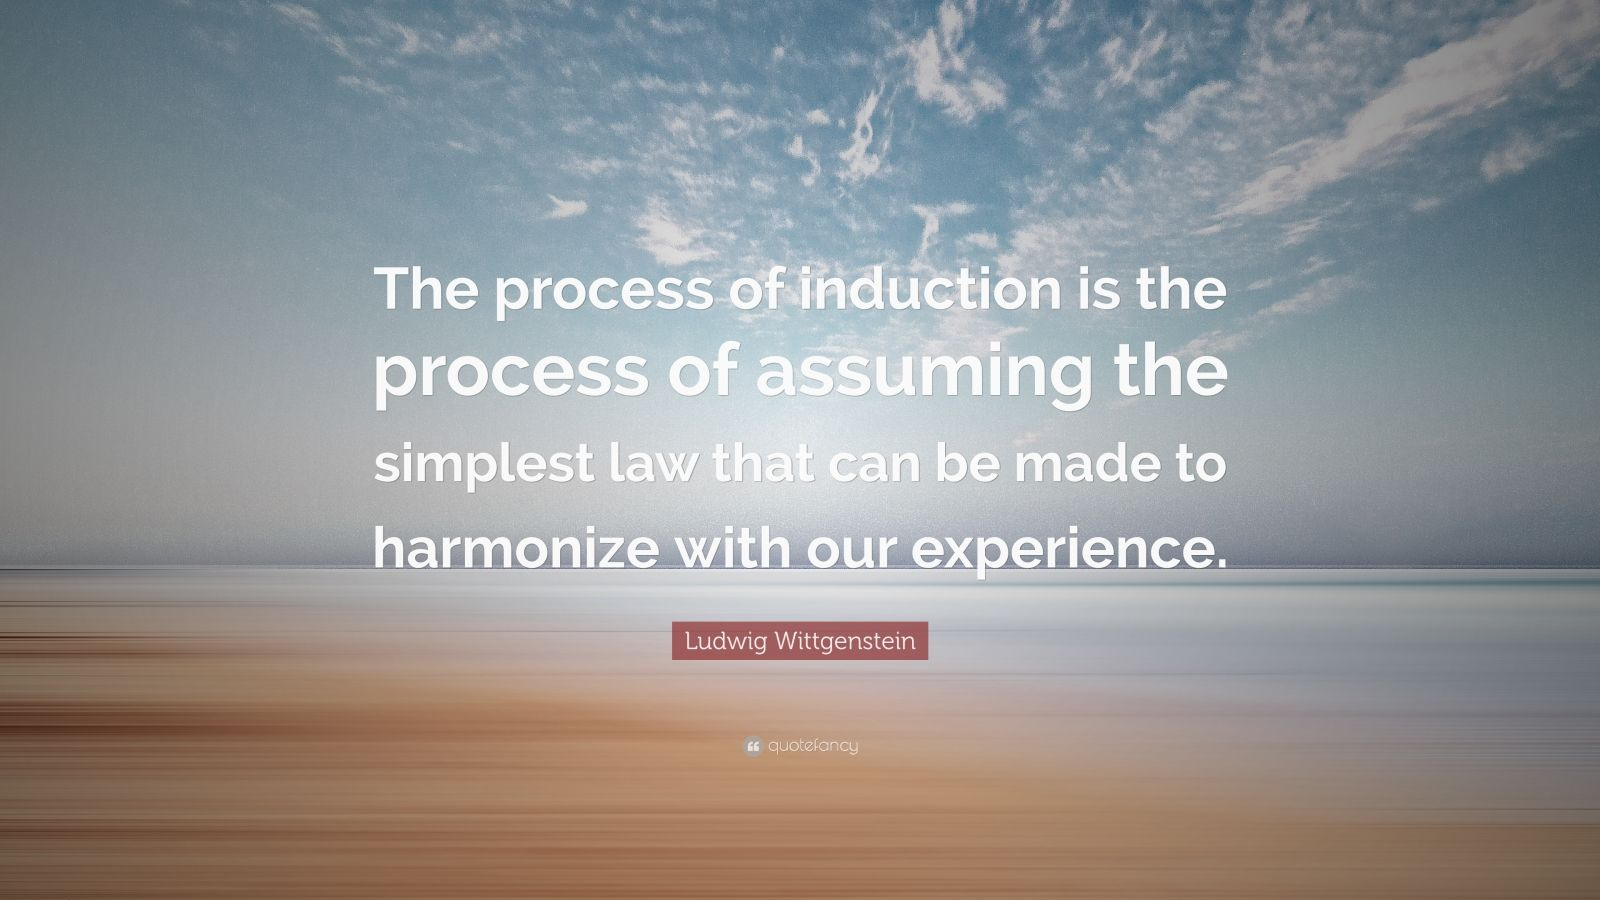 """Ludwig Wittgenstein Quote: """"The process of induction is the process of assuming the simplest law that can be made to harmonize with our experience."""""""